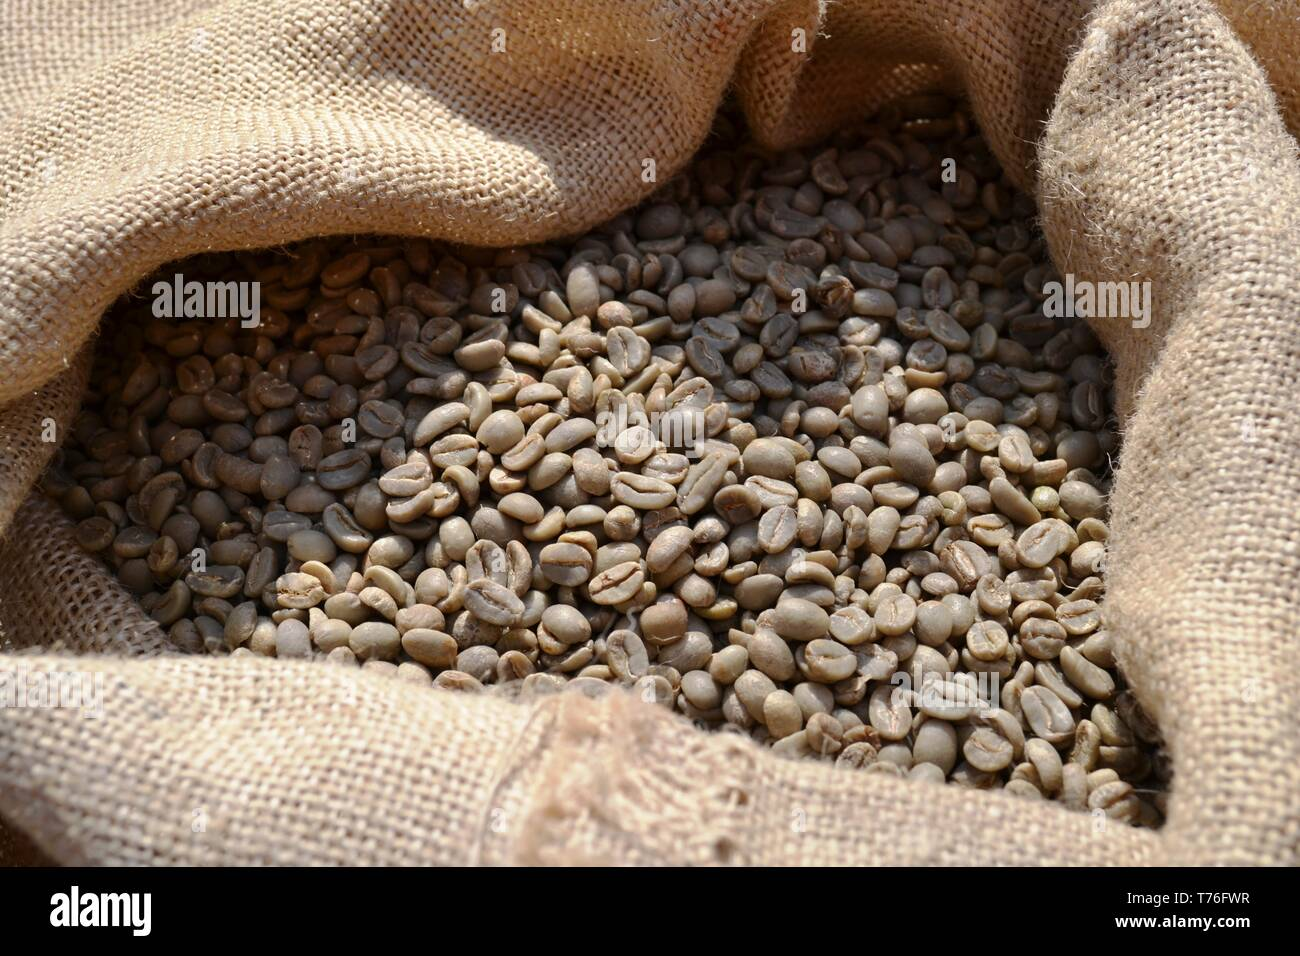 Unroasted dry green coffee beans in a burlap sack of rough canvas exposed in daylight as food for commerce in vegetables for beverages and drinks. - Stock Image